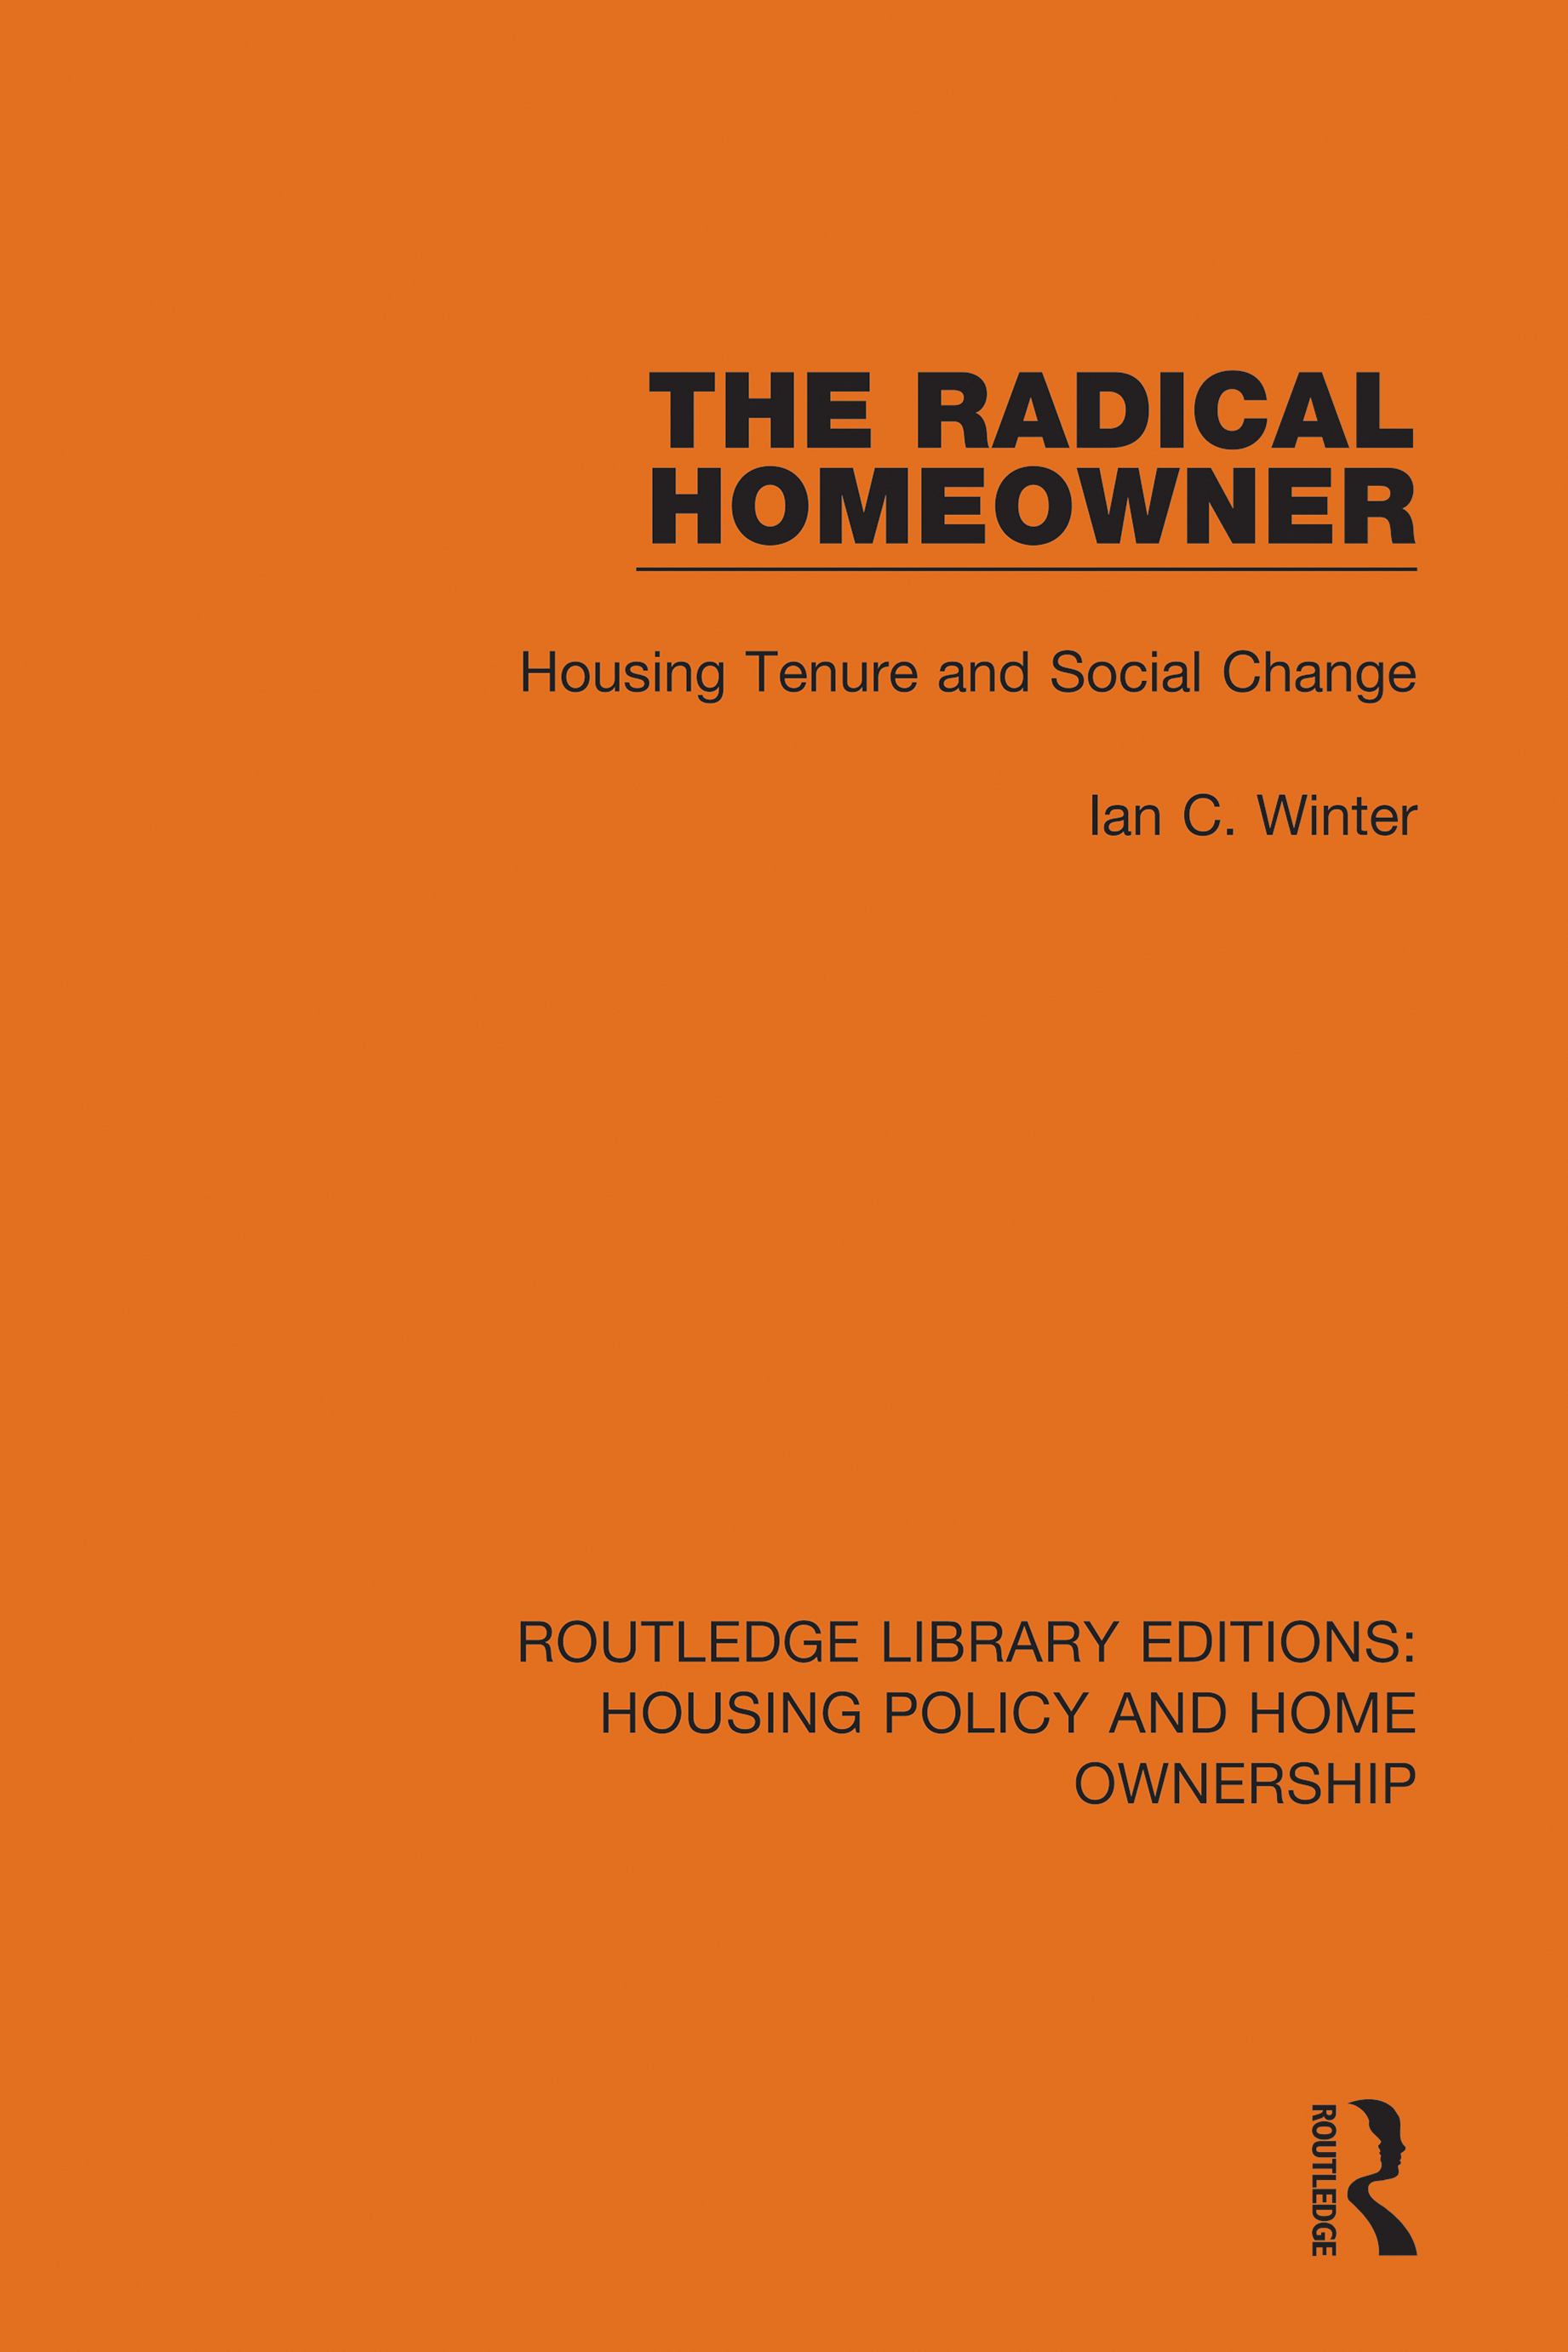 Home Ownership in Western Society: Cementing the Status Quo or a Force for Change?